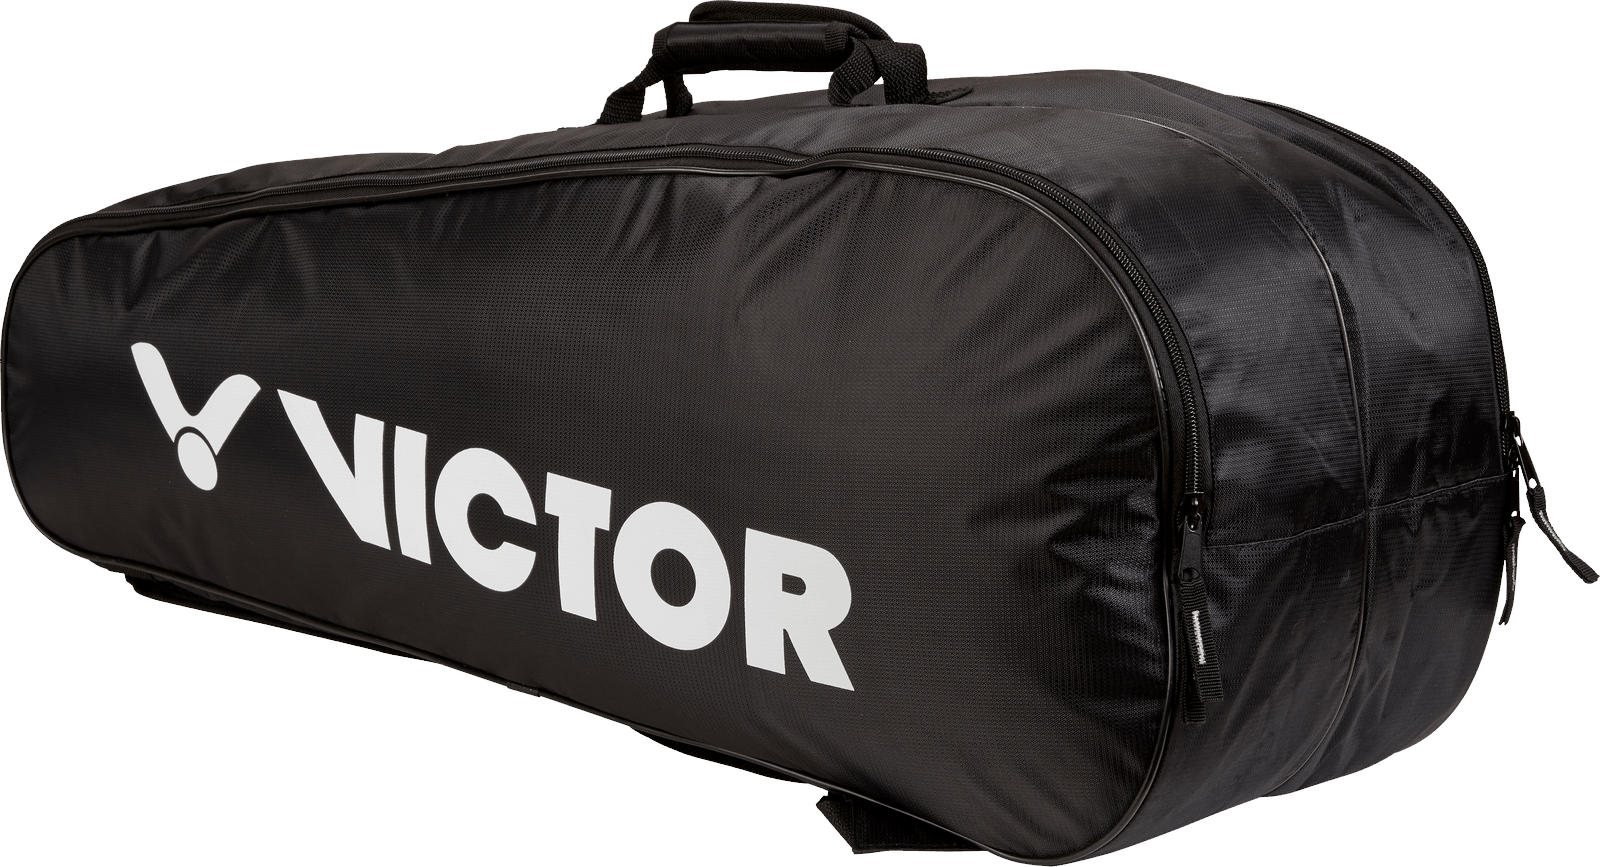 VICTOR Doublethermobag 9150 C